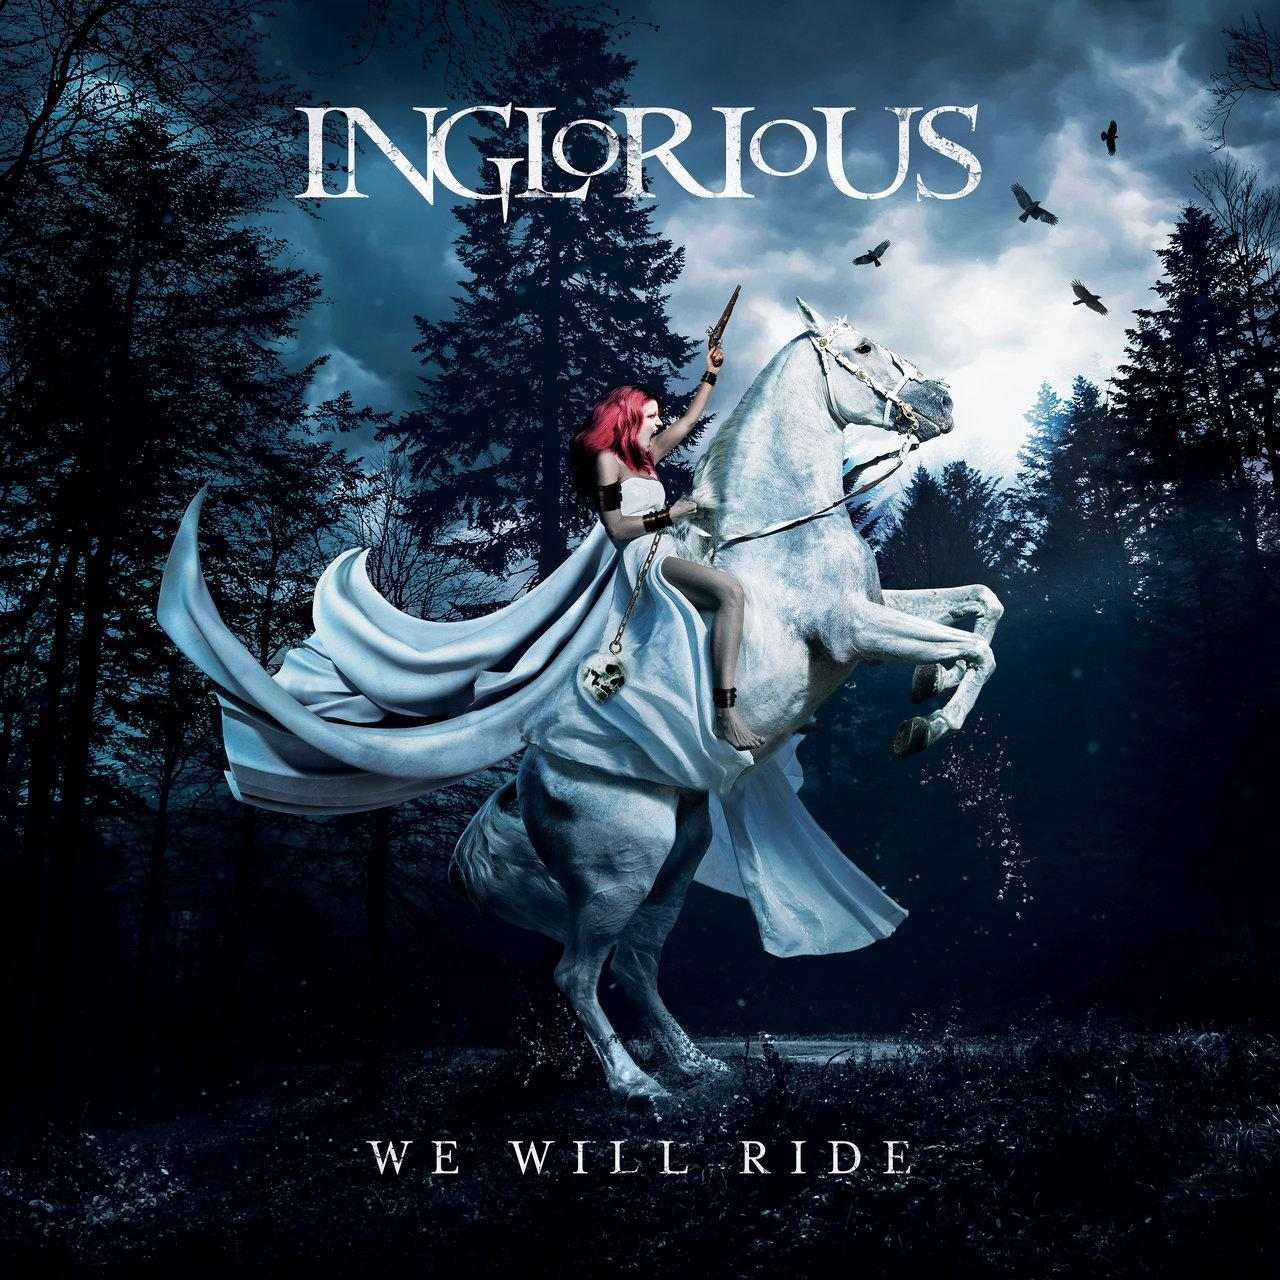 We will ride inglorious 1